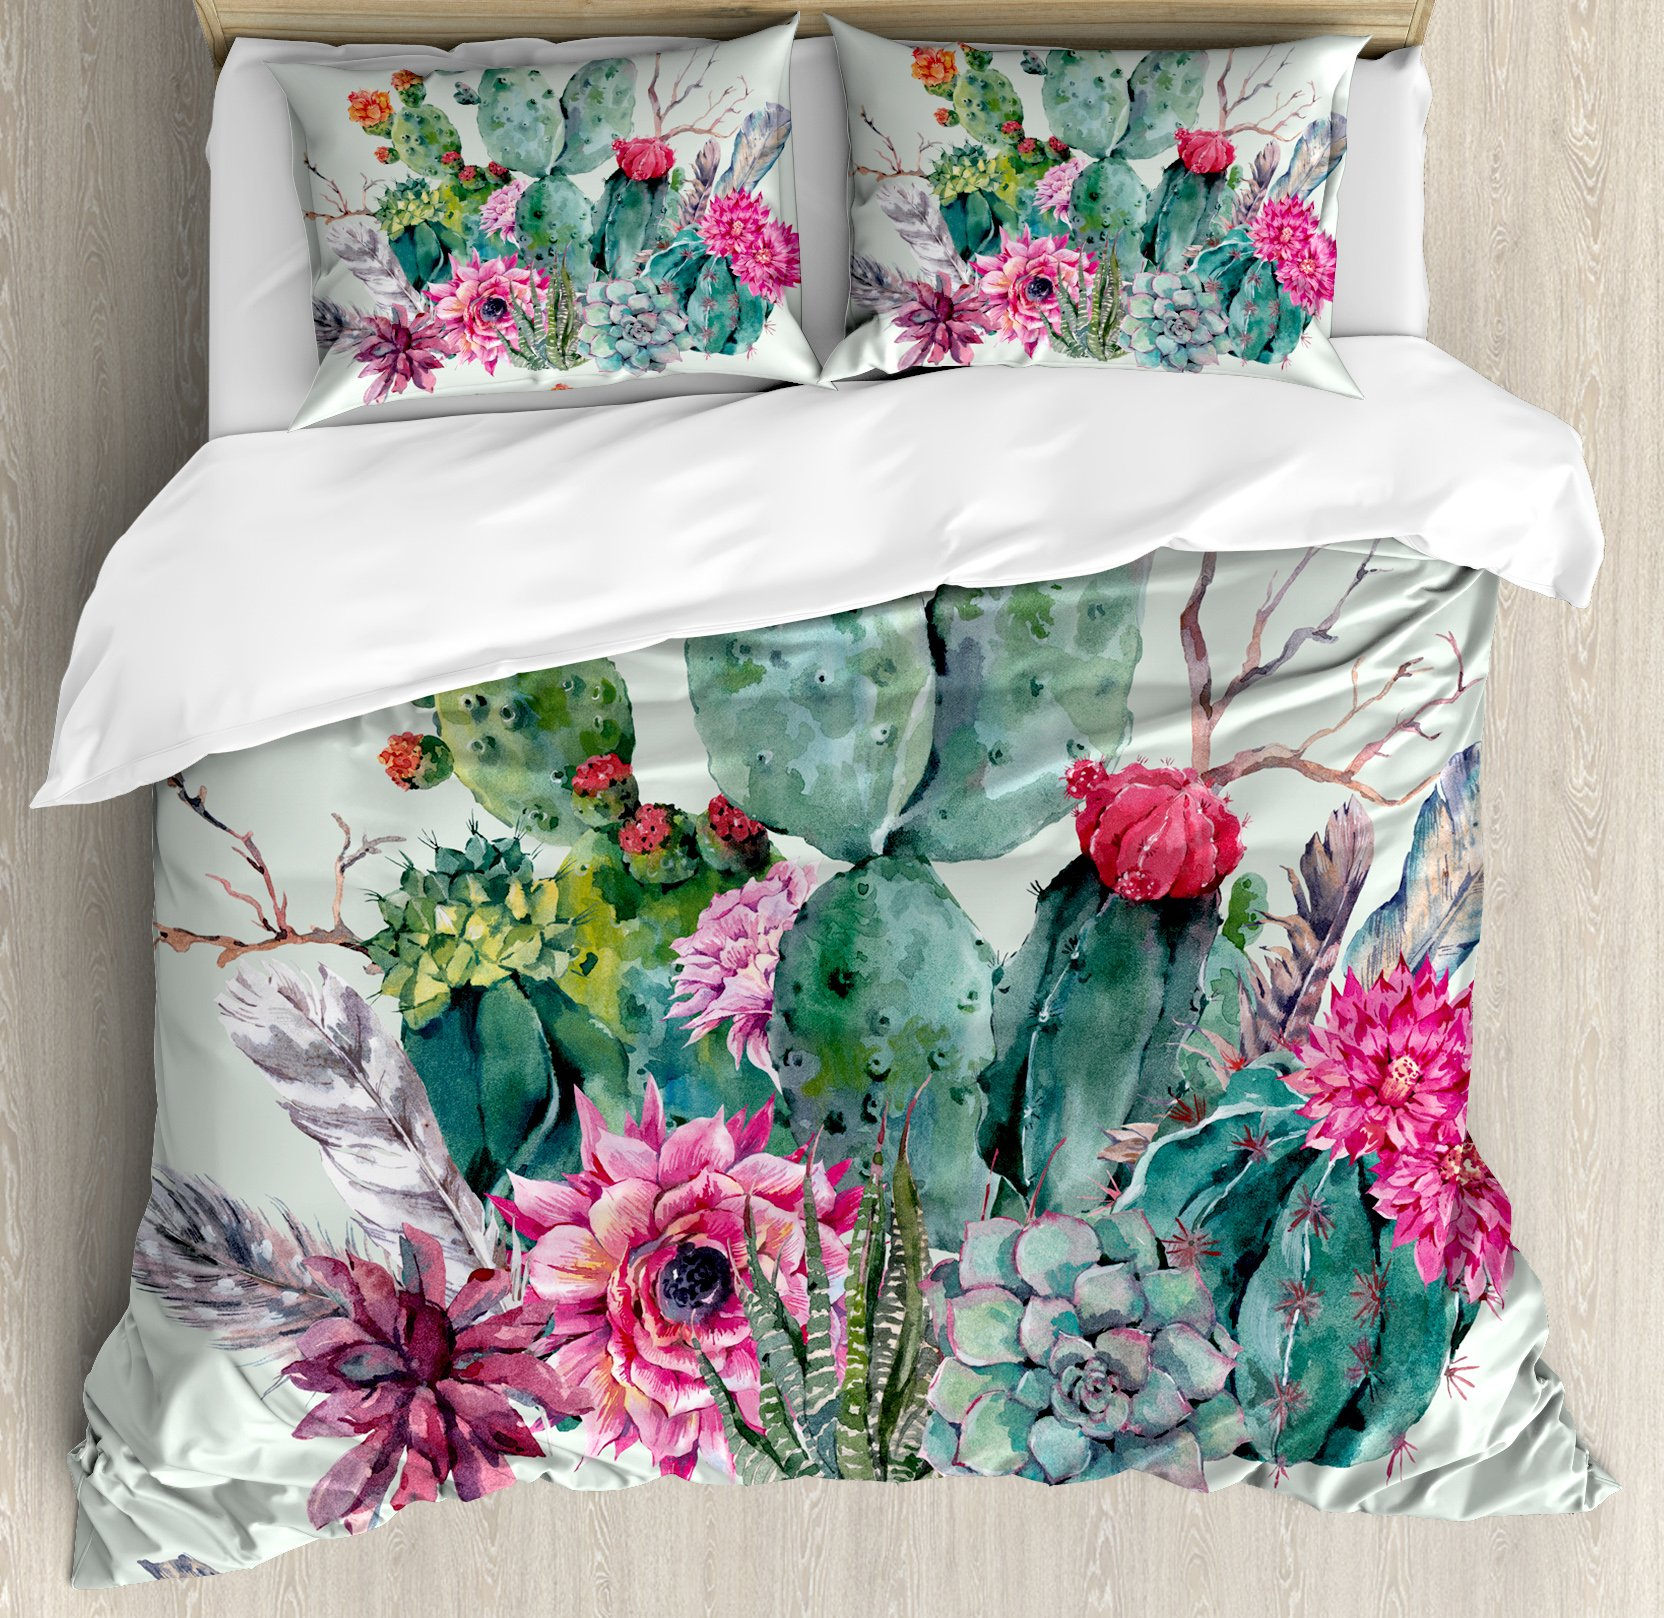 Cactus Decor Duvet Cover Set Queen Size by Ambesonne, Spring Garden with Boho Style Bouquet of Thorny Plants Blooms Arrows Feathers, Decorative 3 Piece Bedding Set with 2 Pillow Shams, Multicolor